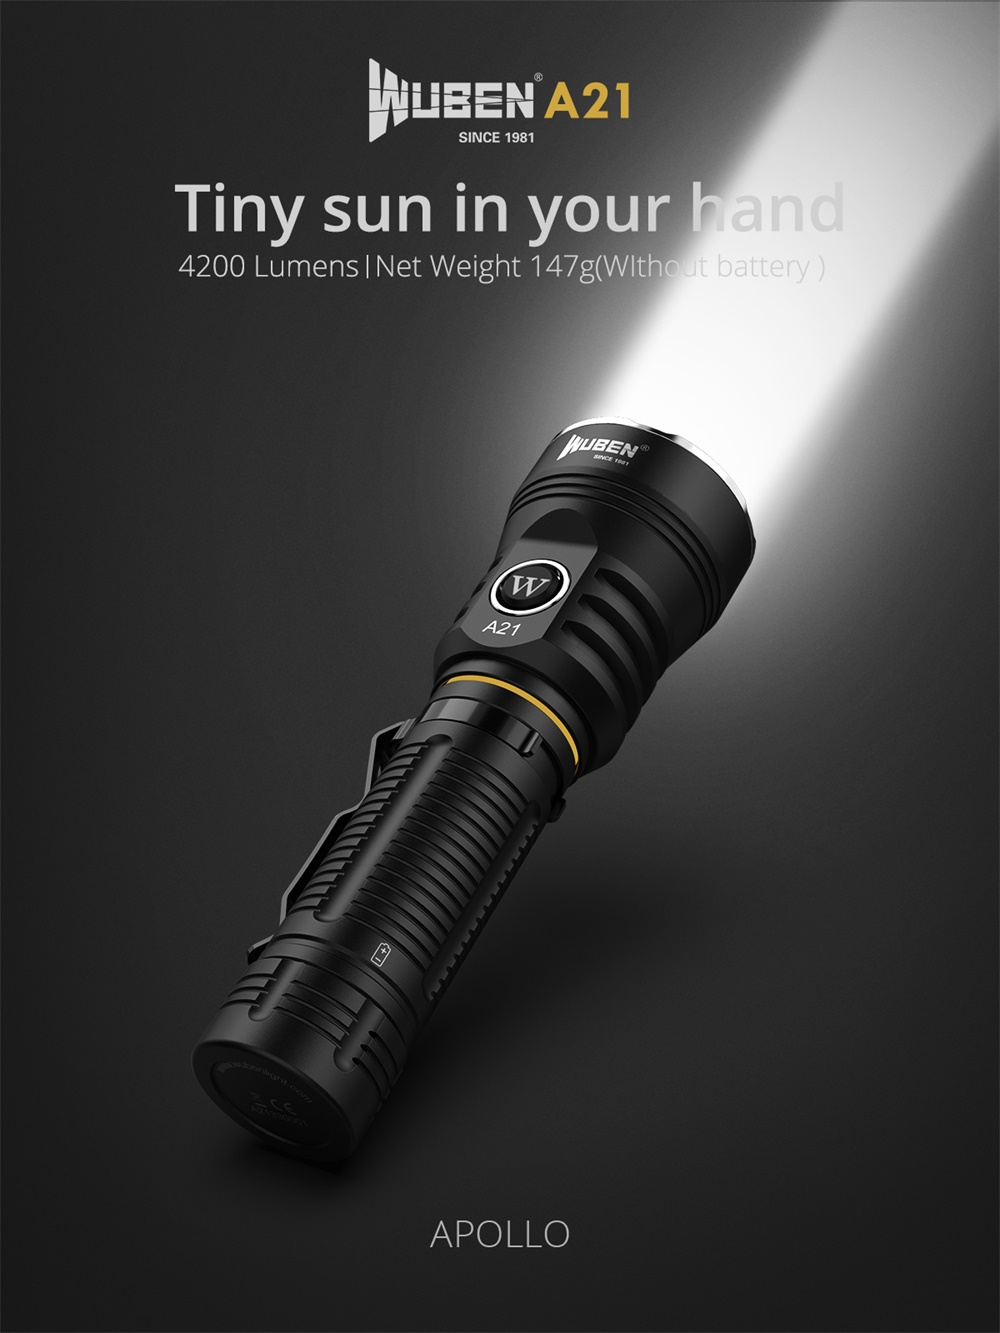 Skip to the beginning of the images gallery